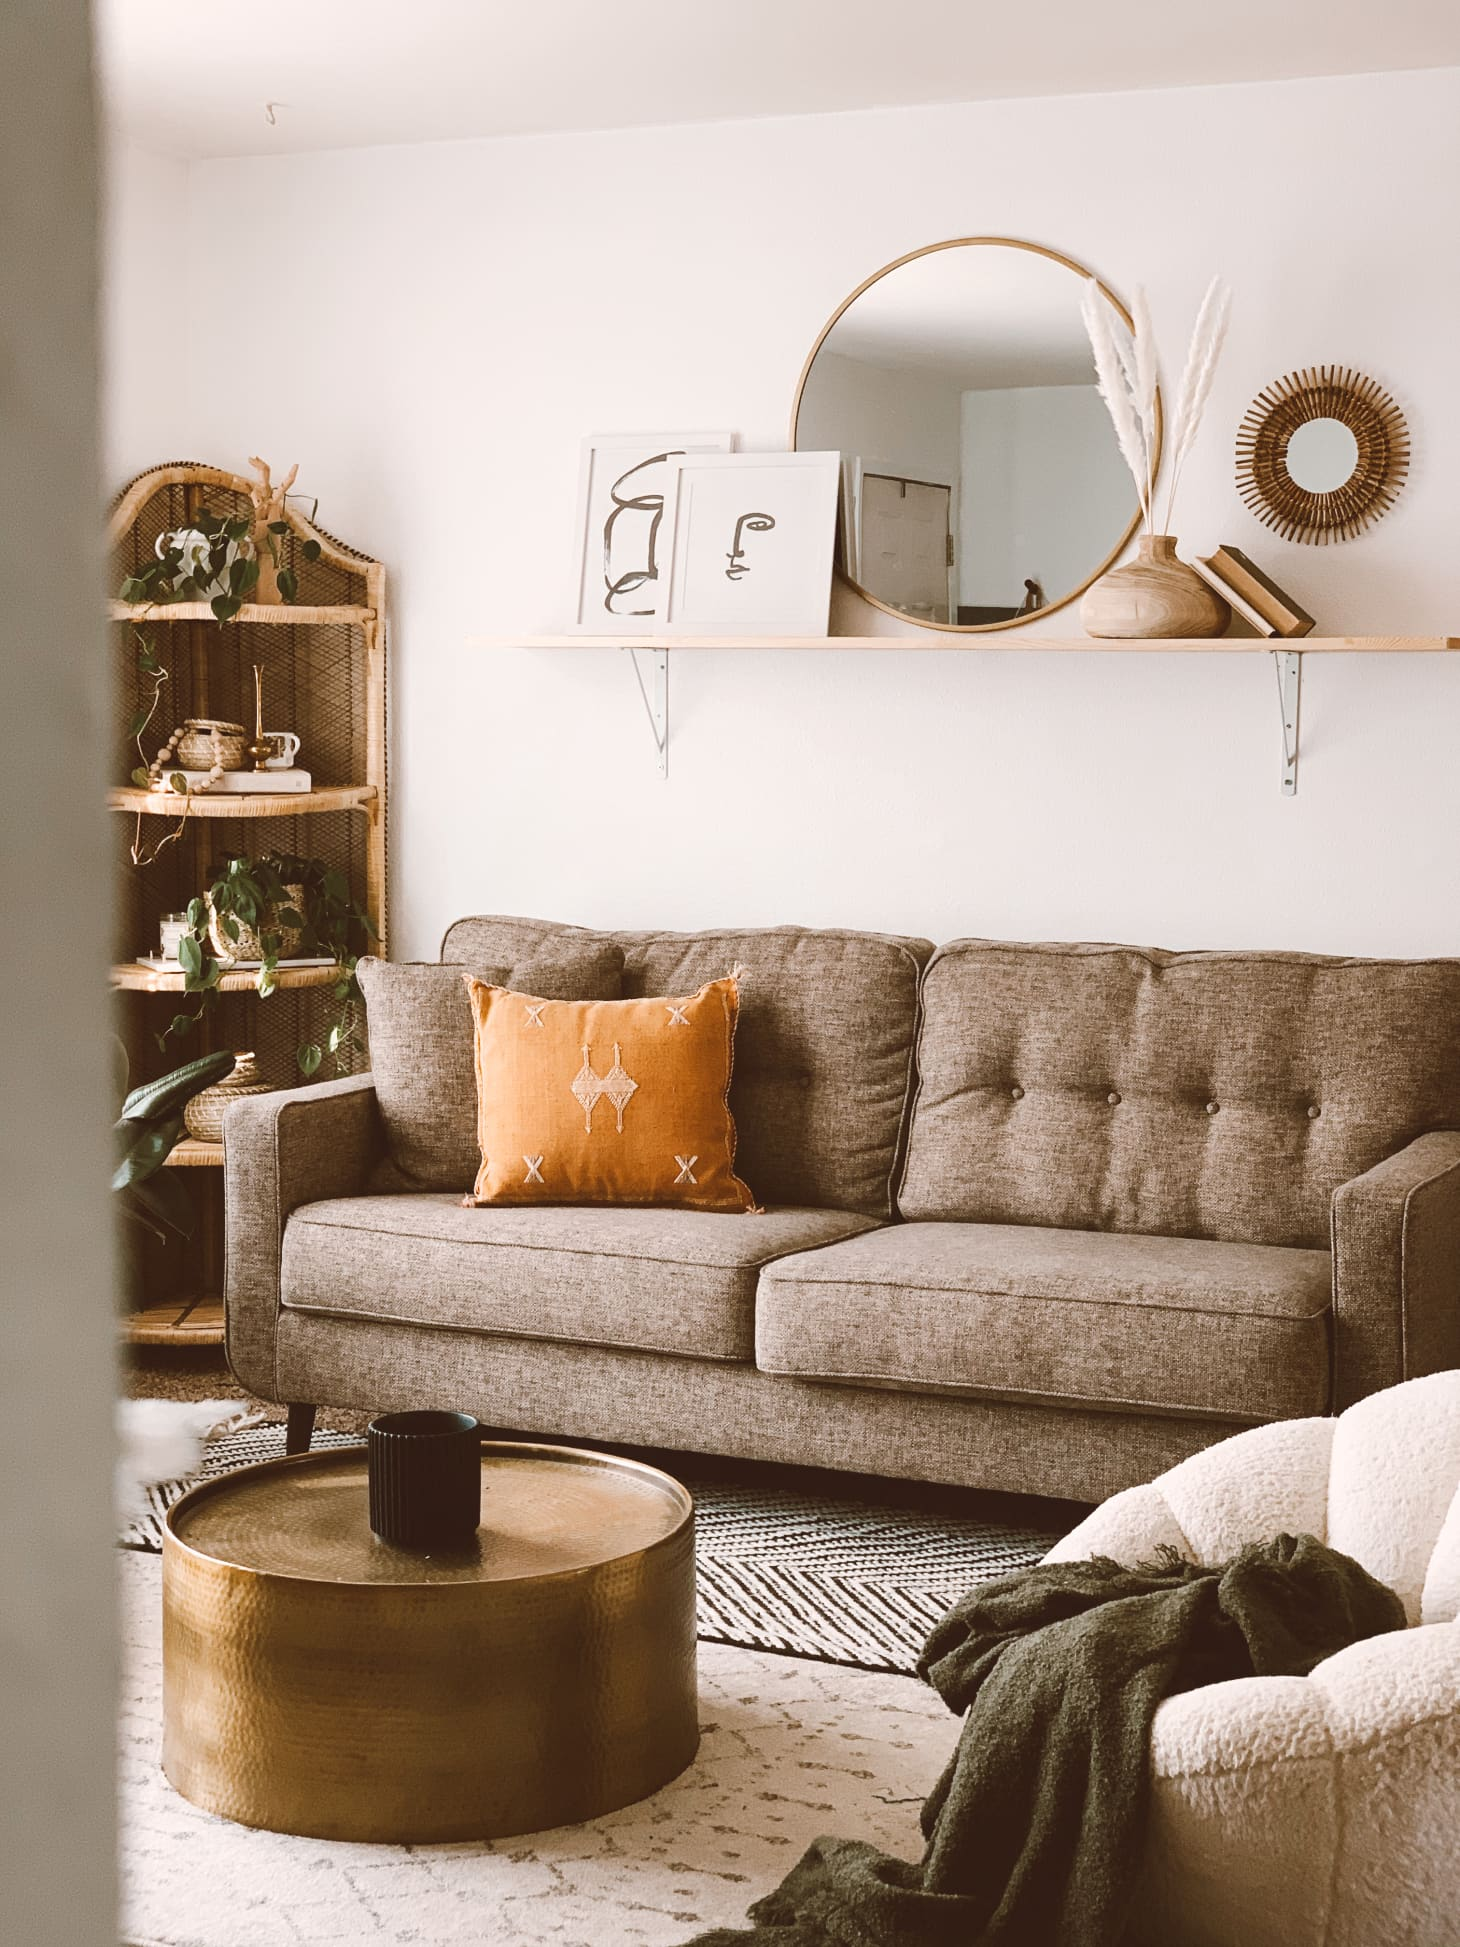 Cookie Cutter Home Diy Projects Apartment Therapy